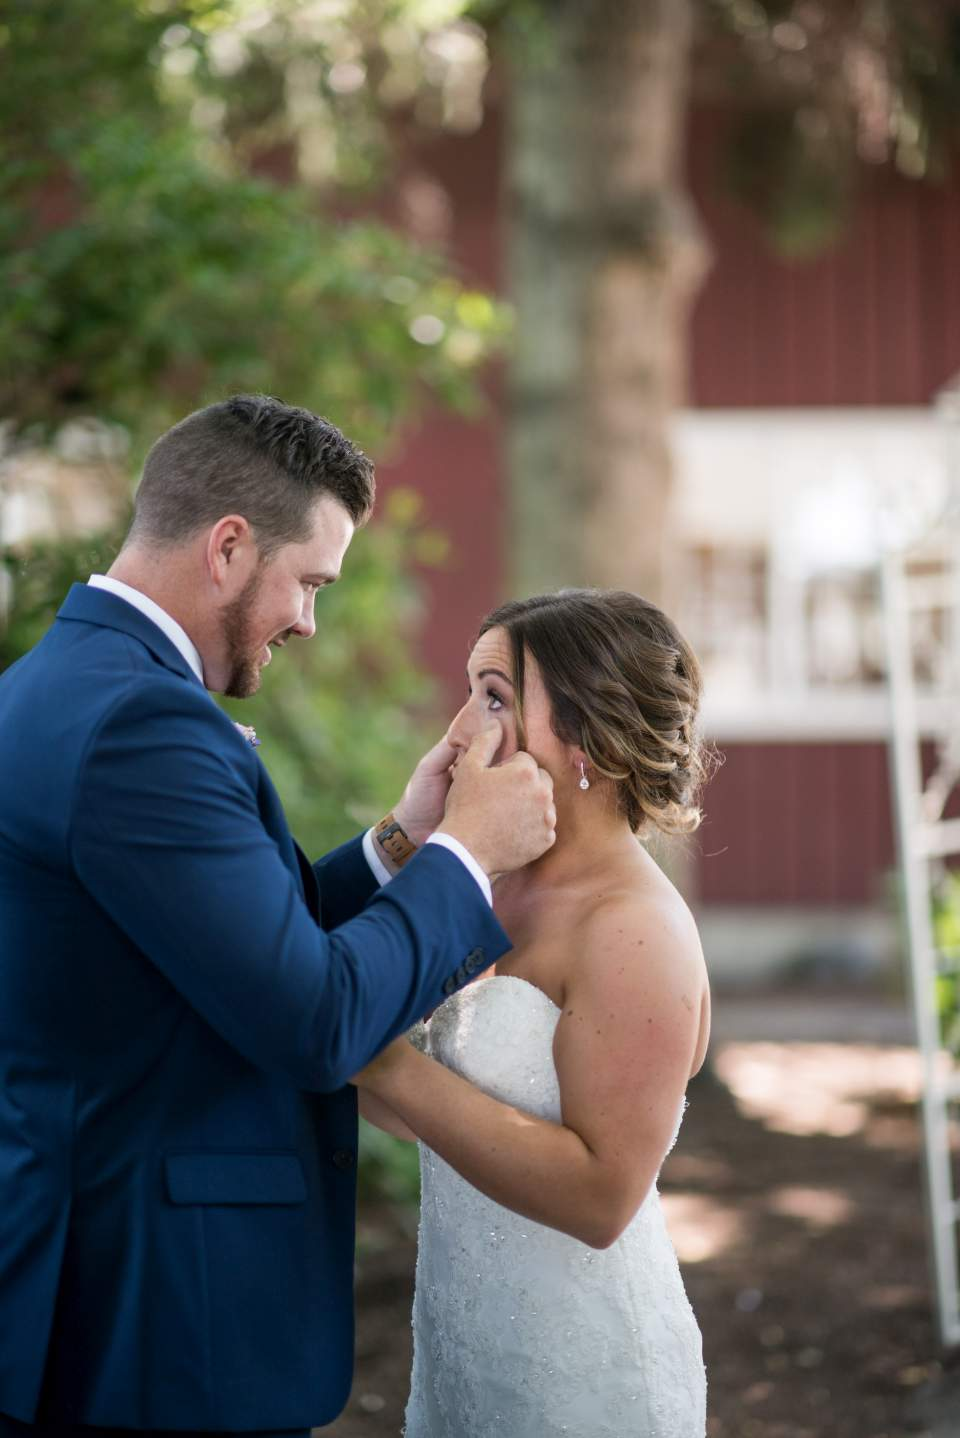 groom wiping tears from brides eyes on wedding day